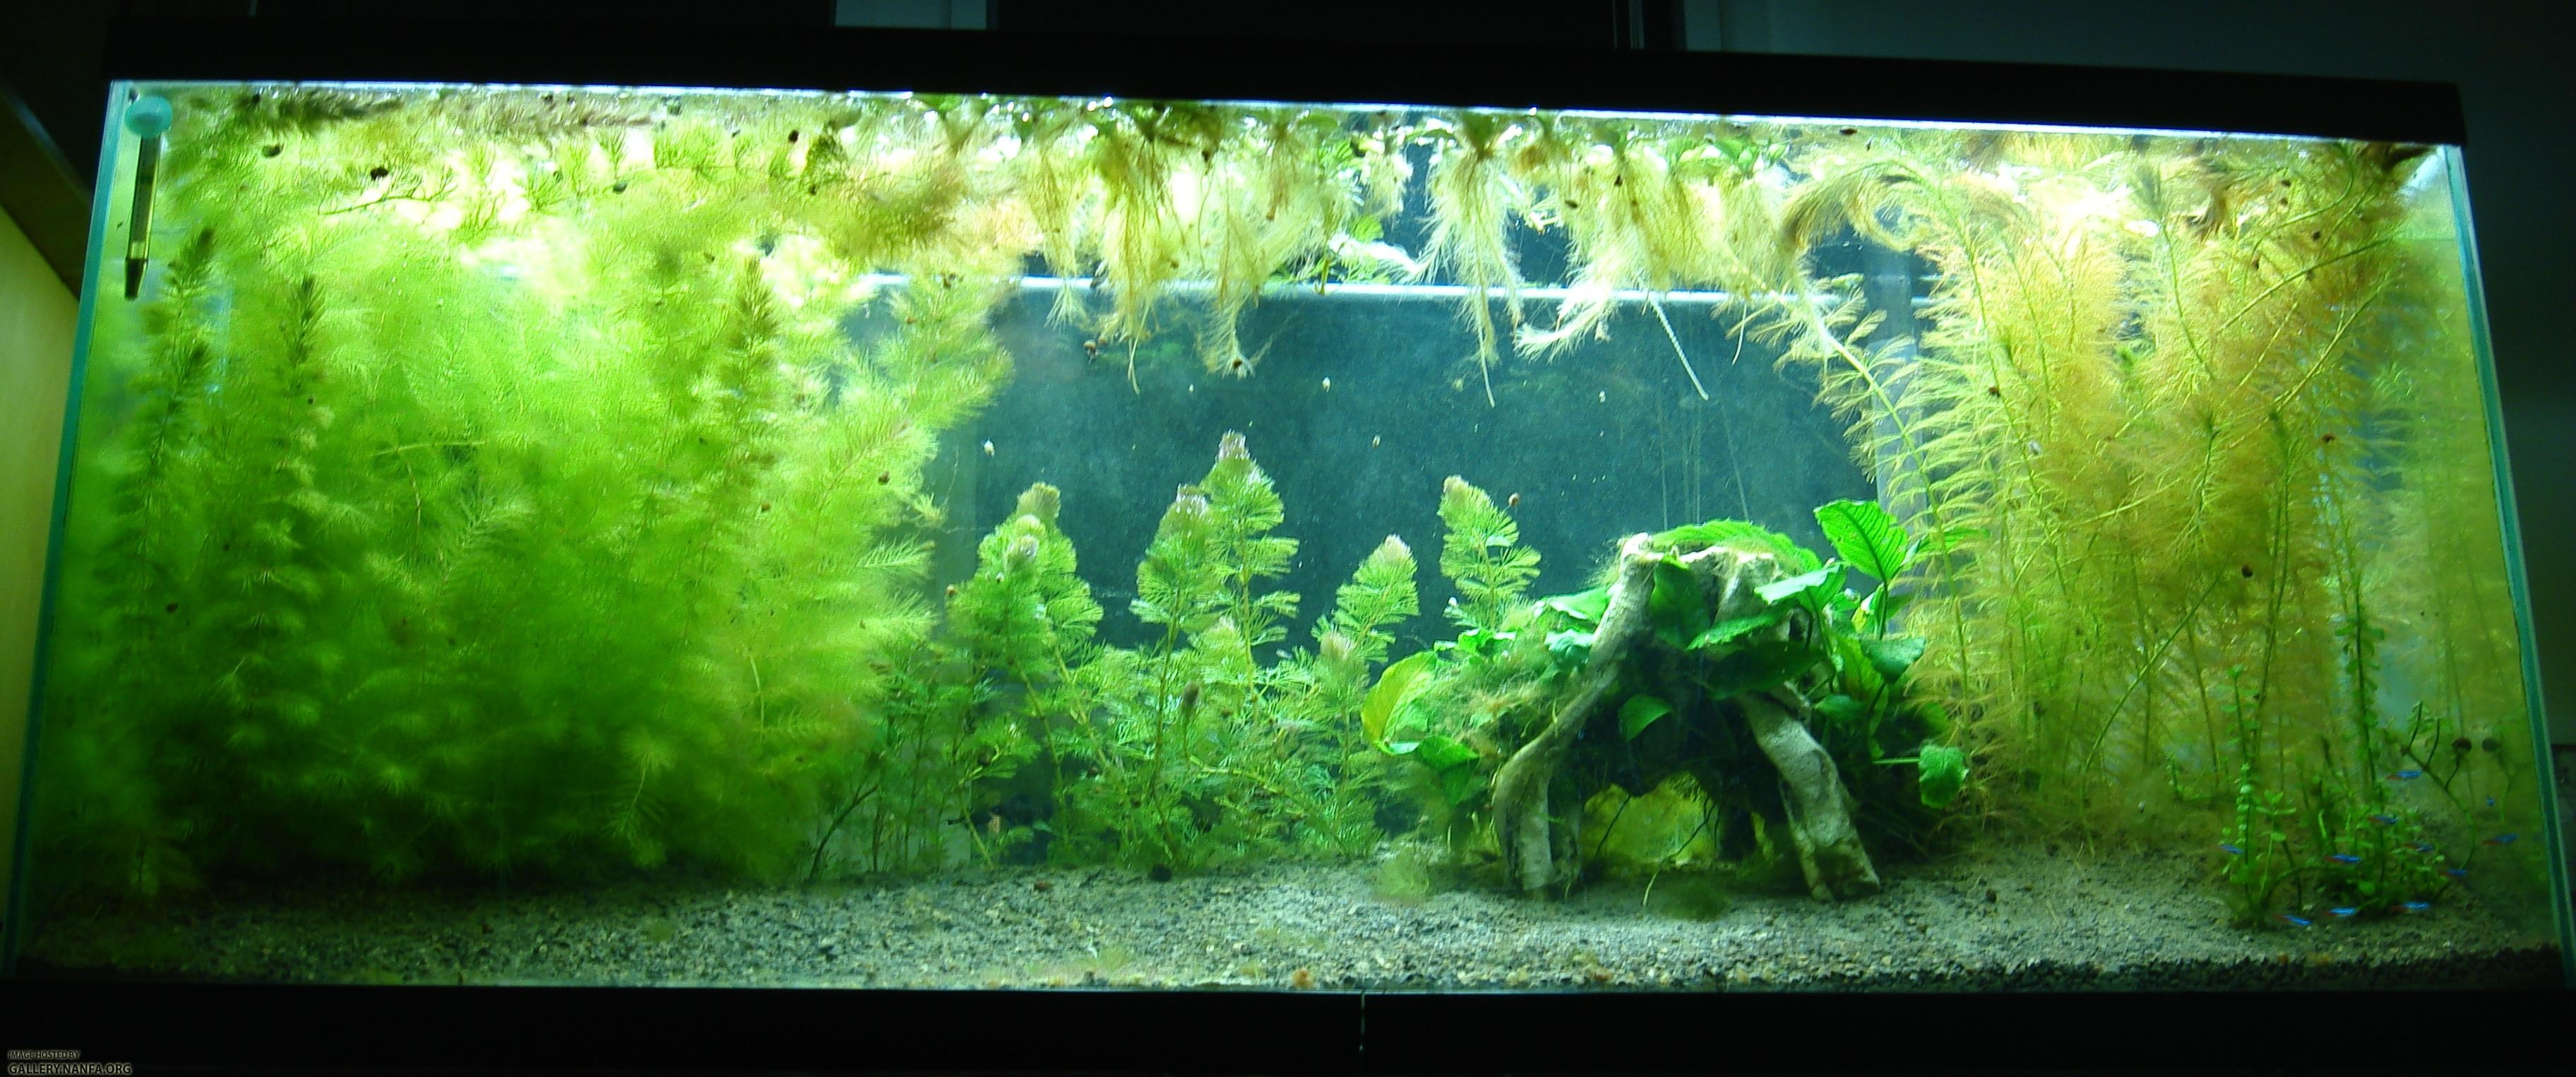 55 gallon elassoma gilberti and neon tetra aquarium as of for Neon fish tank